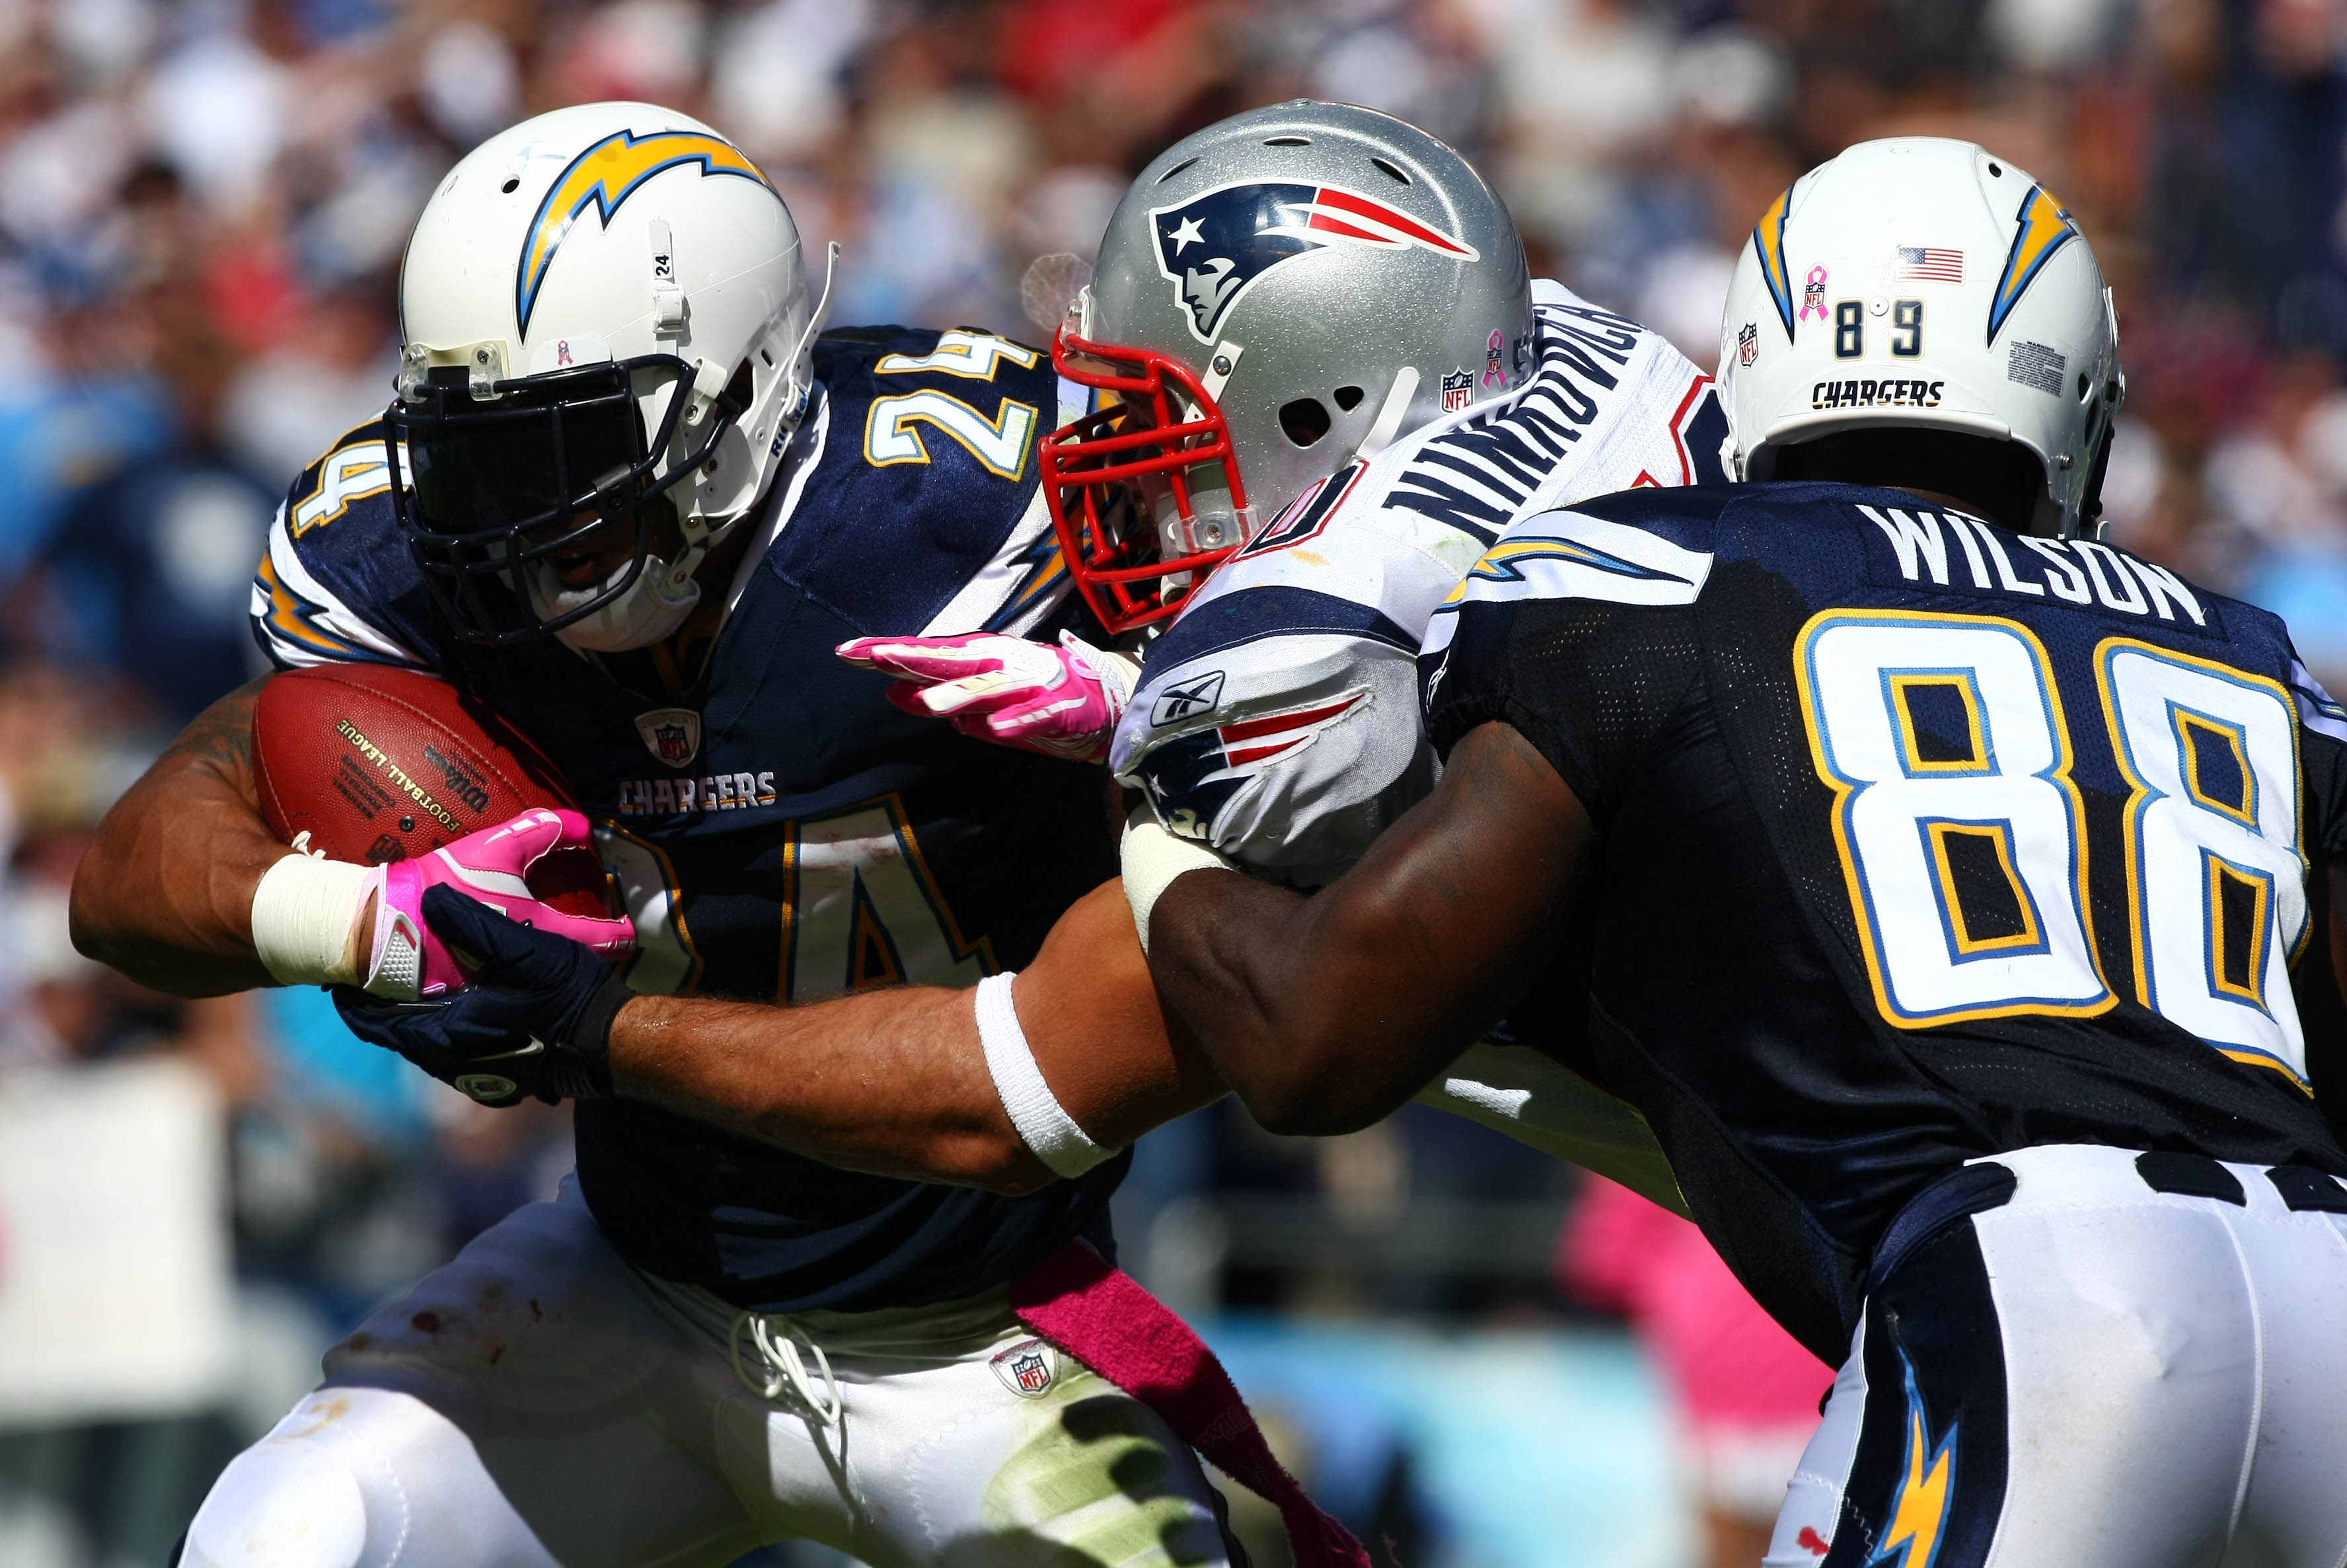 SAN DIEGO - OCTOBER 24:  Runningback Ryan Mathews #24 of the San Diego Chargers runs against the New England Patriots during NFL game on October 24, 2010 at Qualcomm Stadium in San Diego, California. (Photo by Donald Miralle/Getty Images)